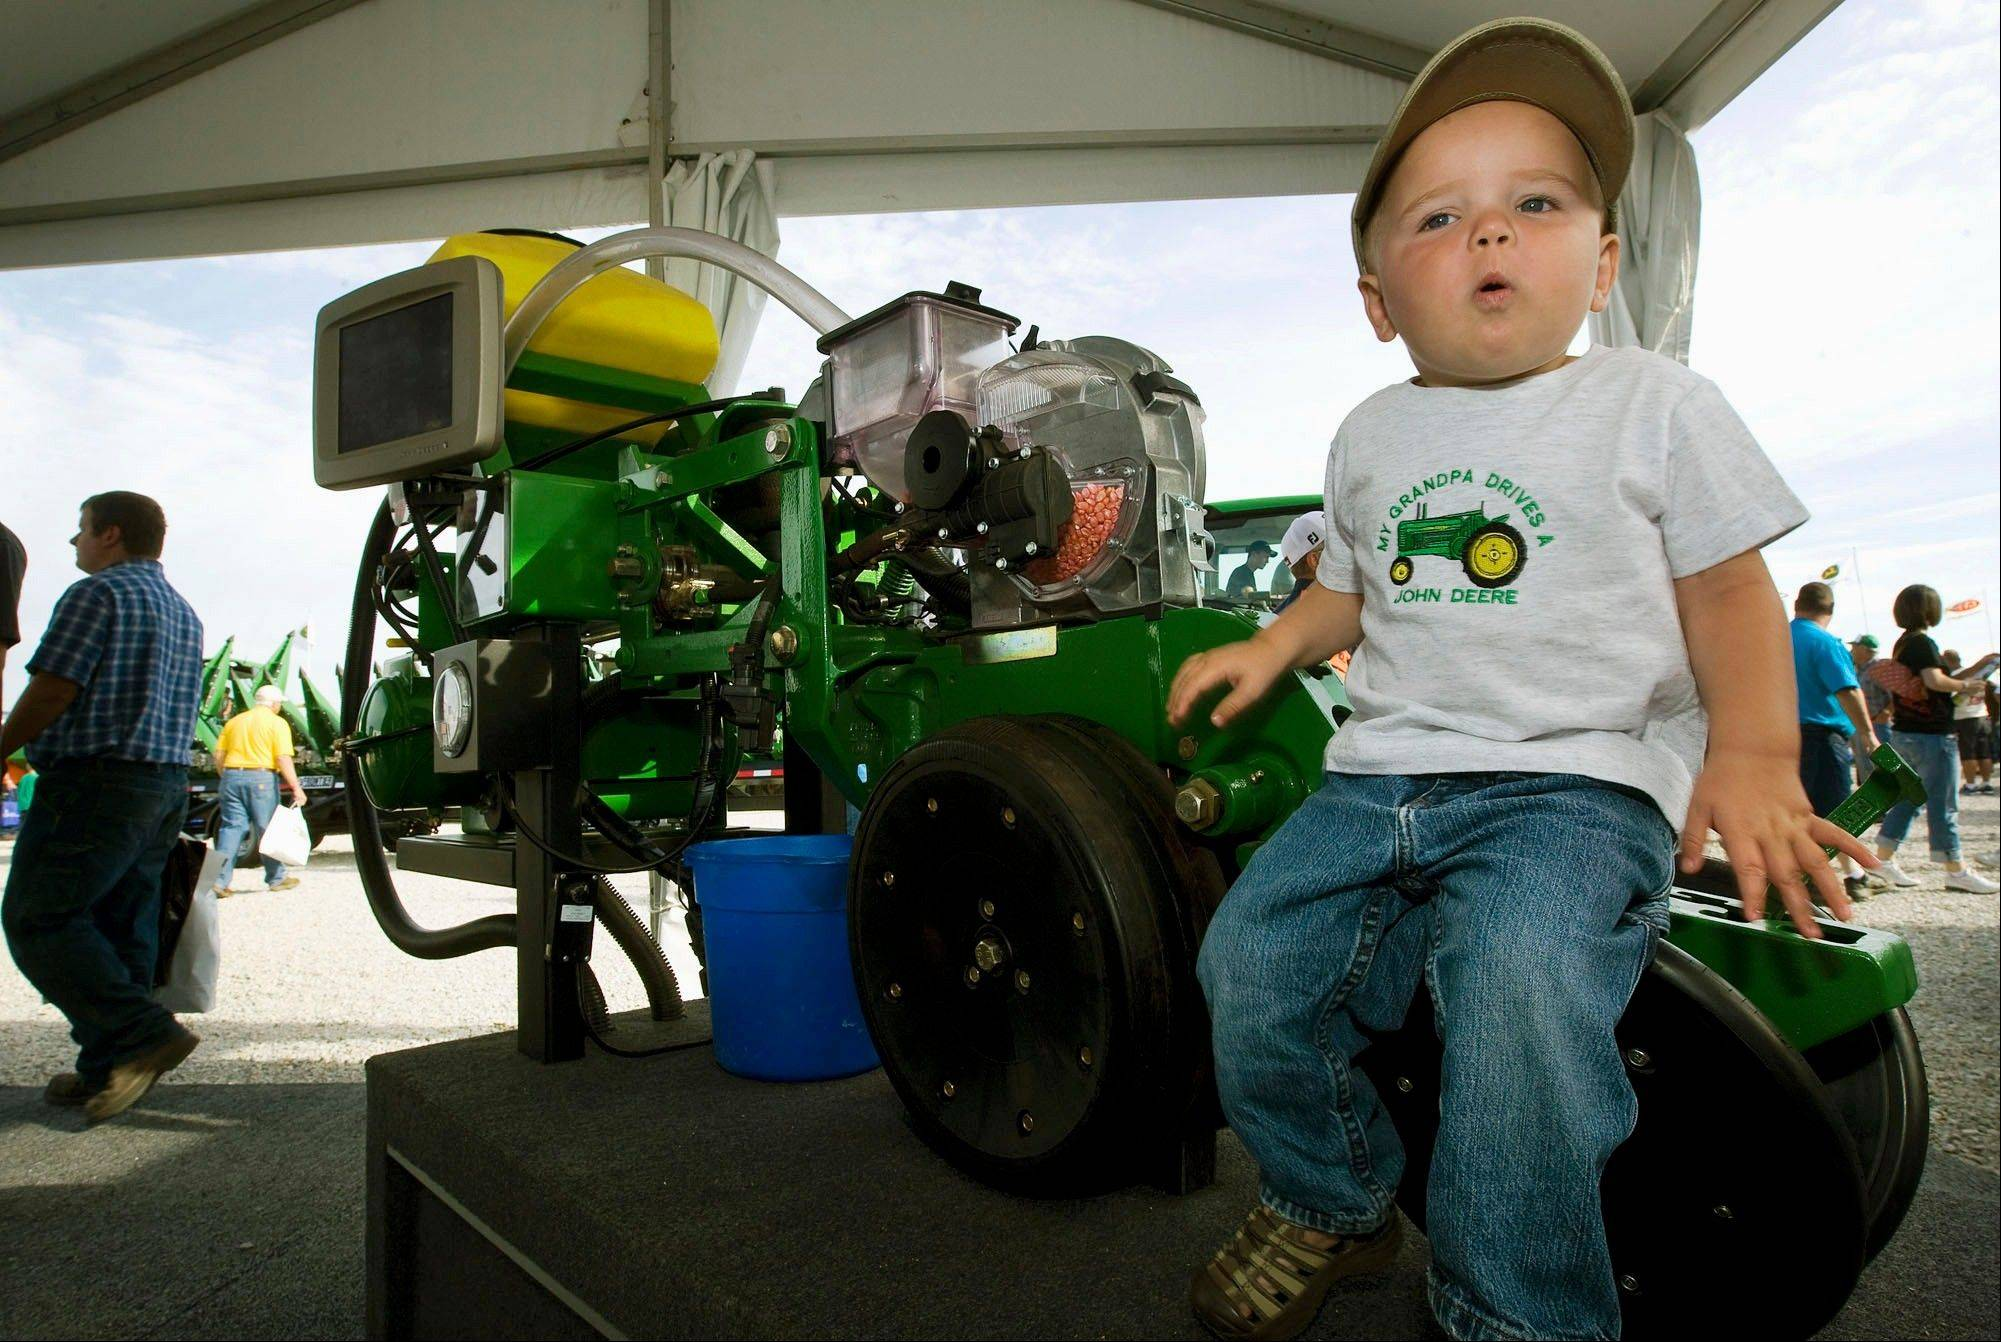 Colten Stundebeck, of Salisbury, Mo., checks out his grandfather John's farm machinery brand under the John Deere tent at the Farm Progress Show in Decatur.